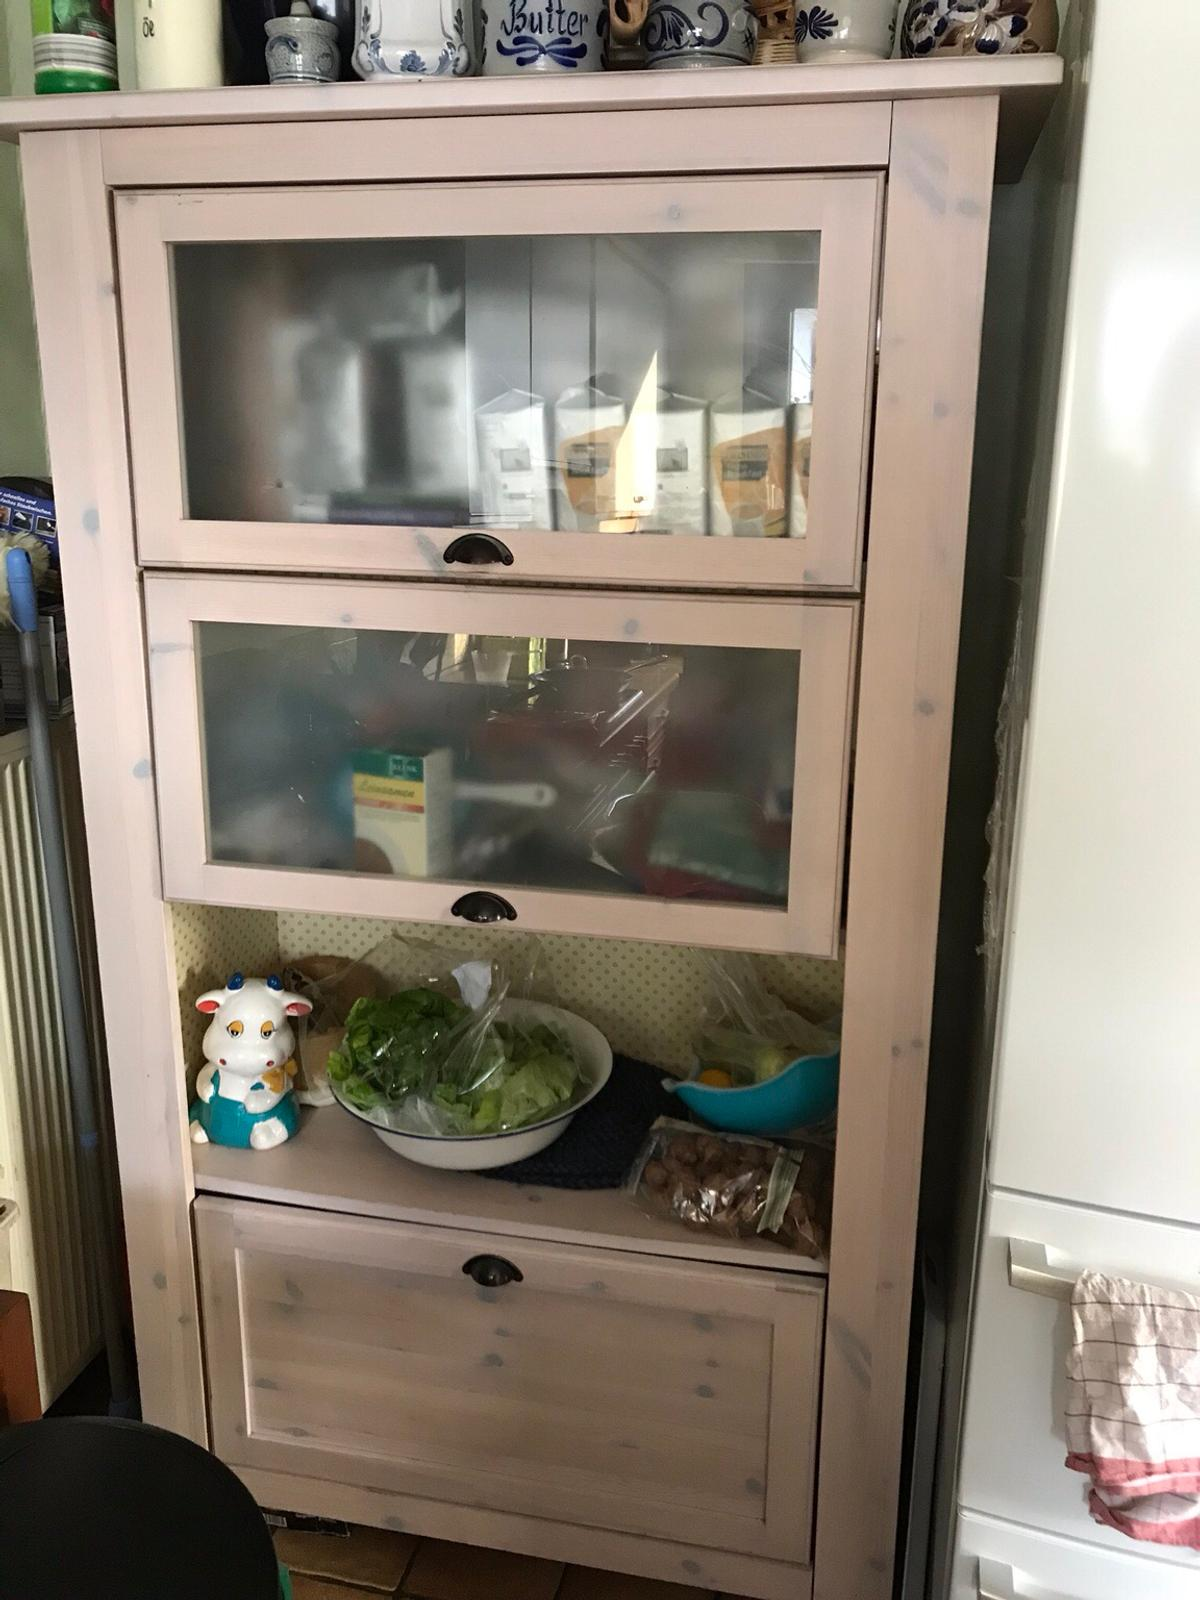 Ikea Friggesby Komode Buffet In 53604 Bad Honnef For 150 00 For Sale Shpock